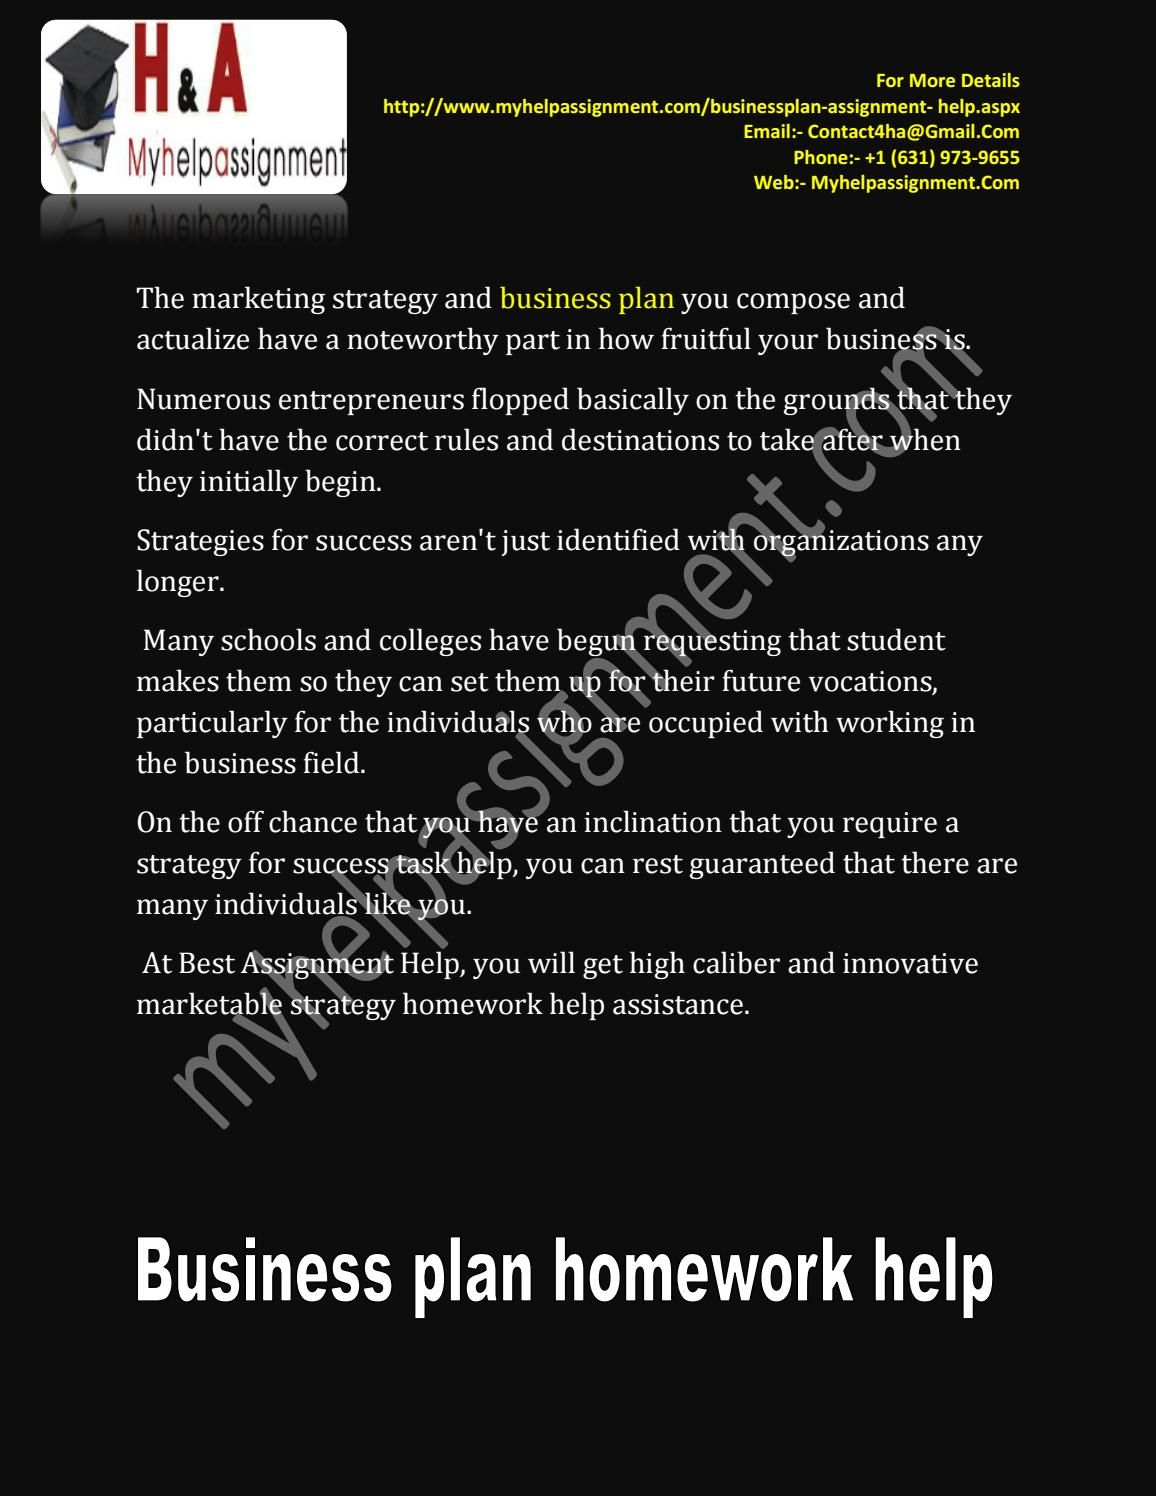 Homework help business plan